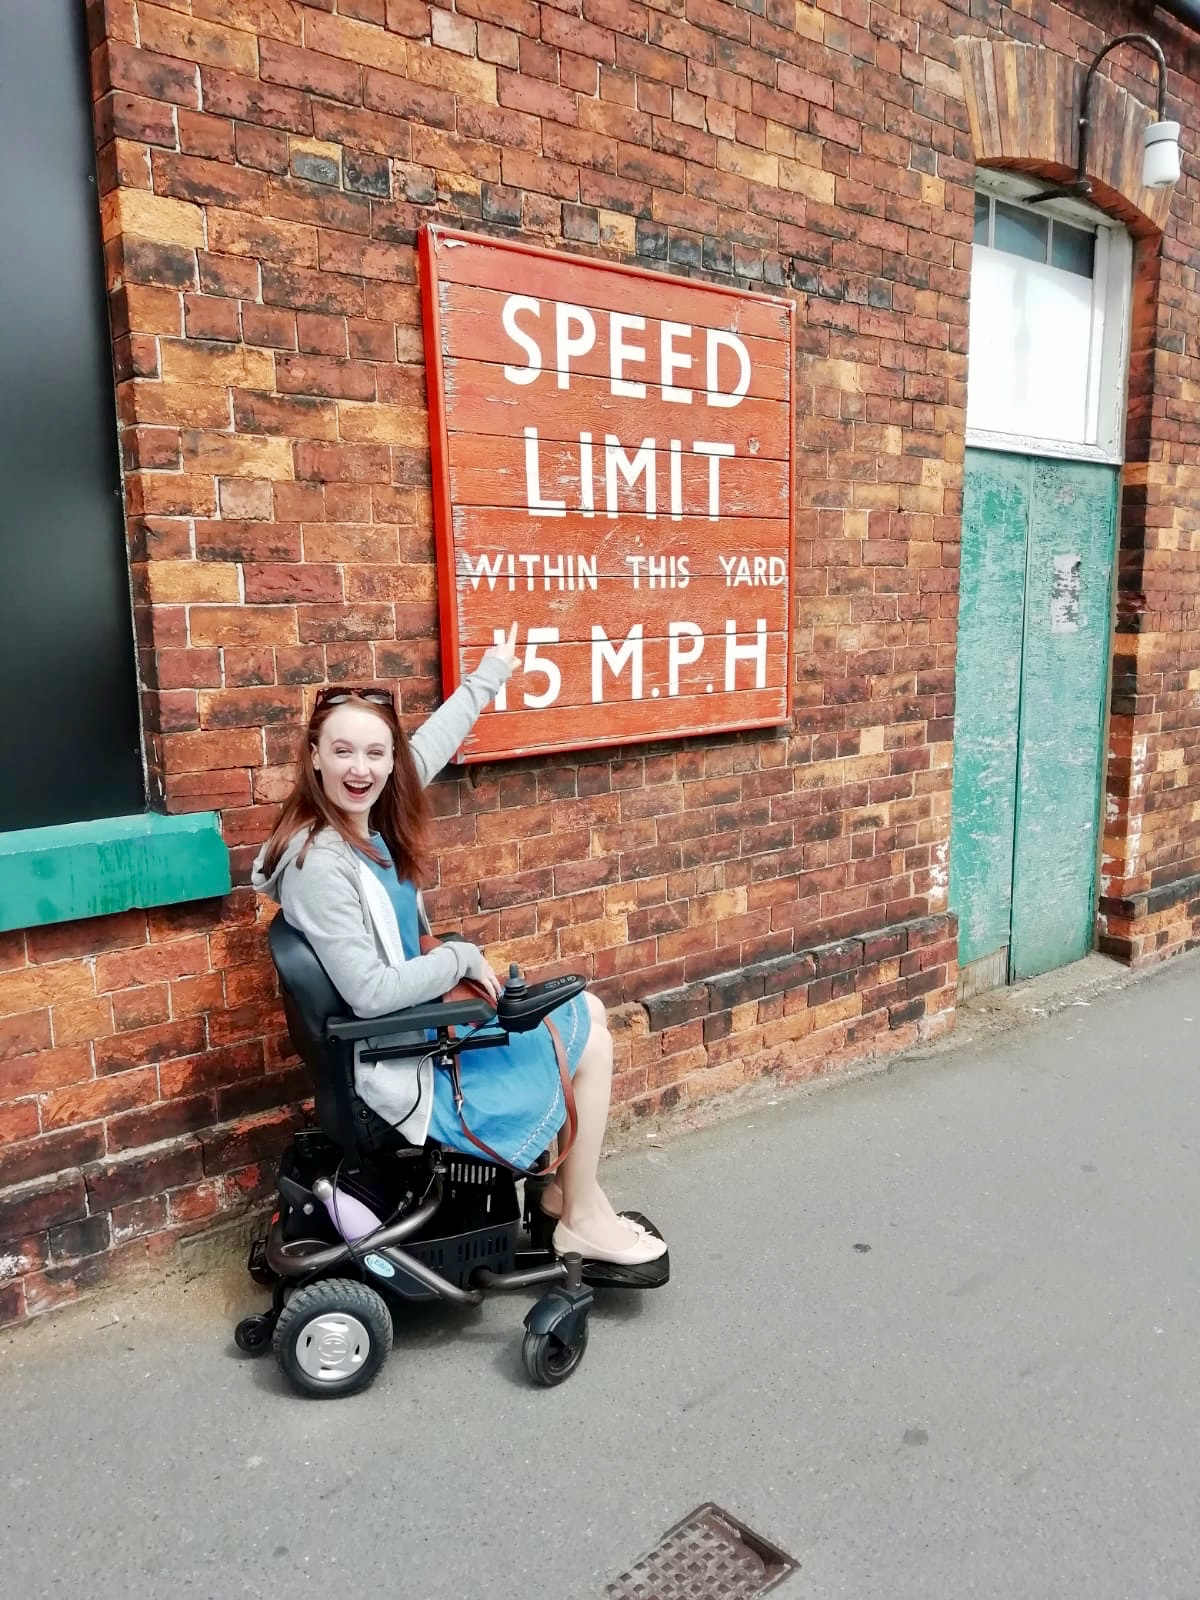 pippa in power-chair, pointing to outdoor sign reading 'speed limit within this yard 15MPH' and laughing